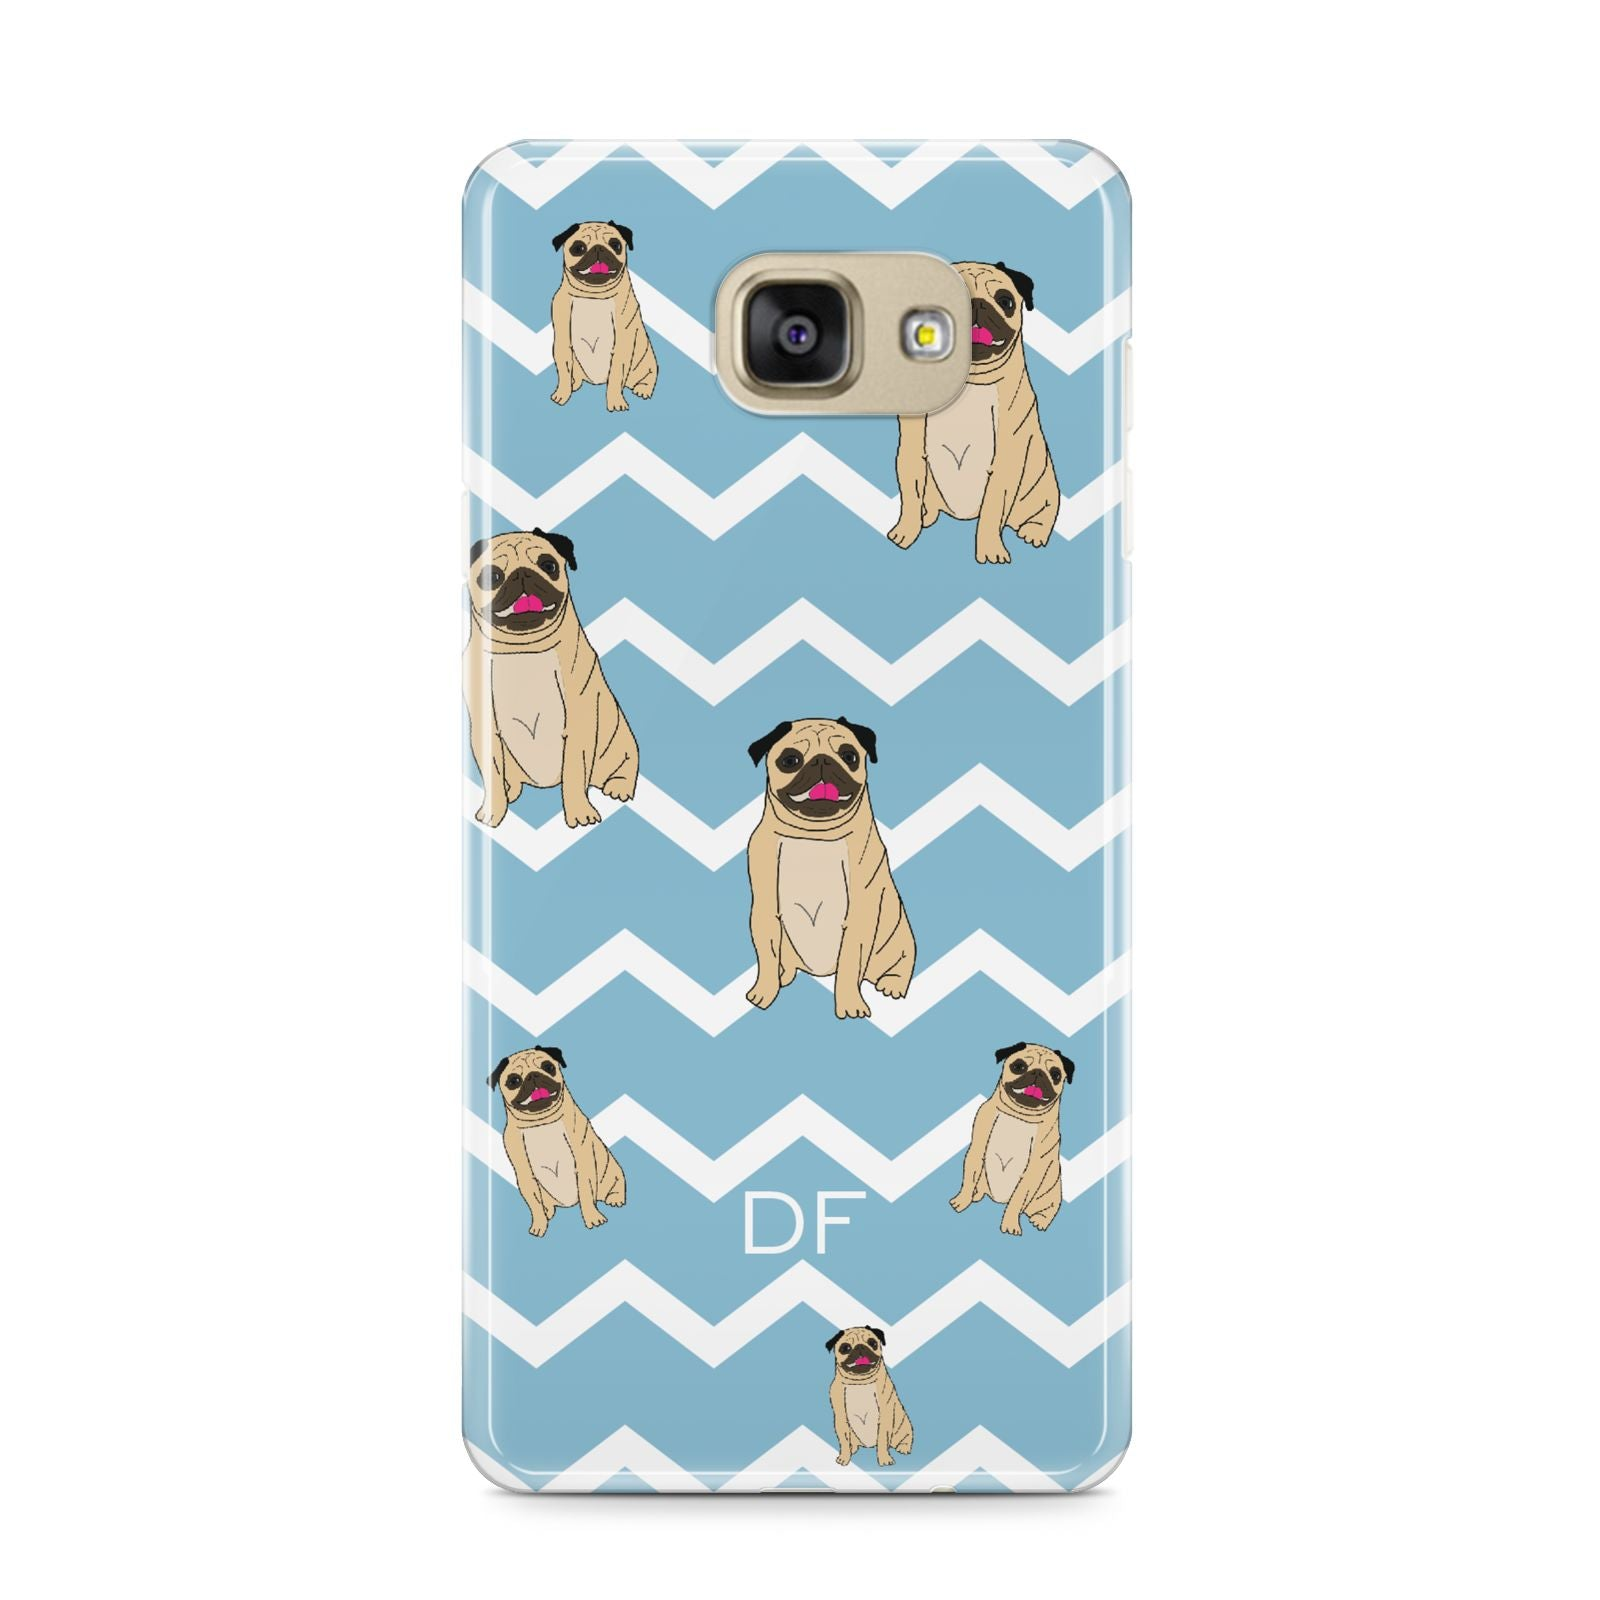 Personalised Pug Initials Samsung Galaxy A9 2016 Case on gold phone